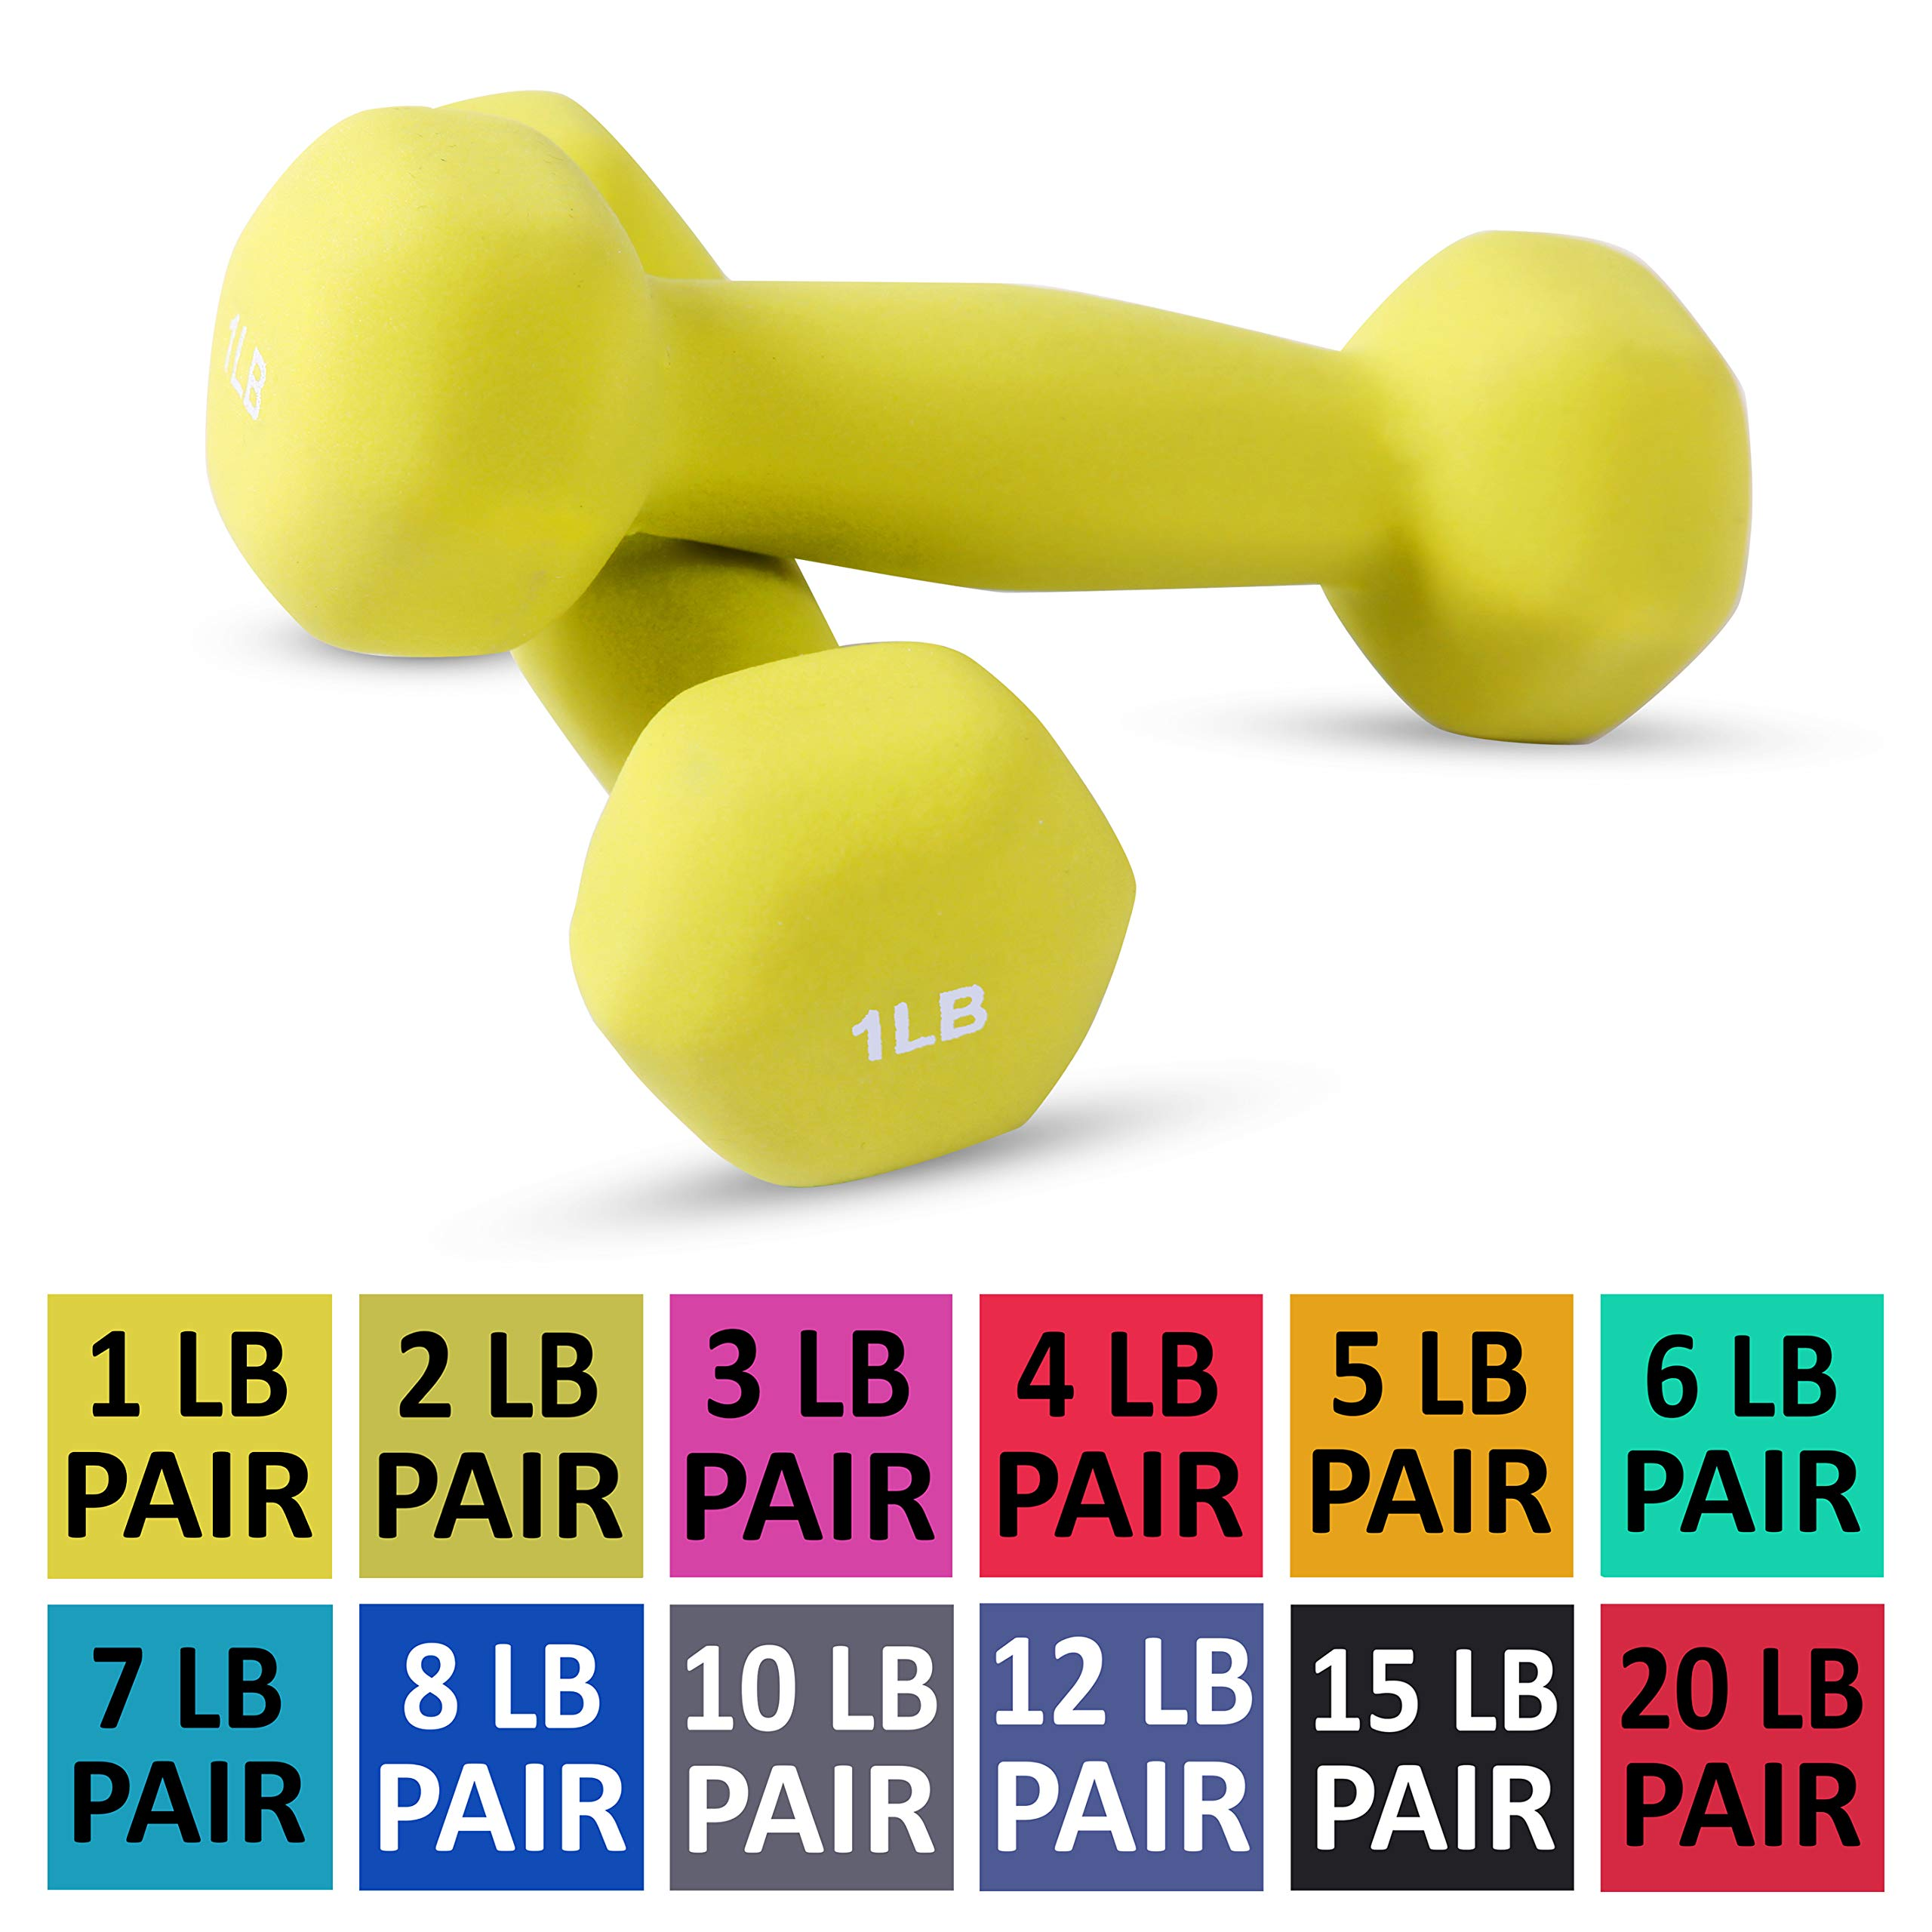 Neoprene Dumbbell Pairs by Day 1 Fitness - 1 Pound - Non-Slip, Hexagon Shape, Color Coded, Easy To Read Hand Weights for Muscle Toning, Strength Building, Weight Loss by Day 1 Fitness